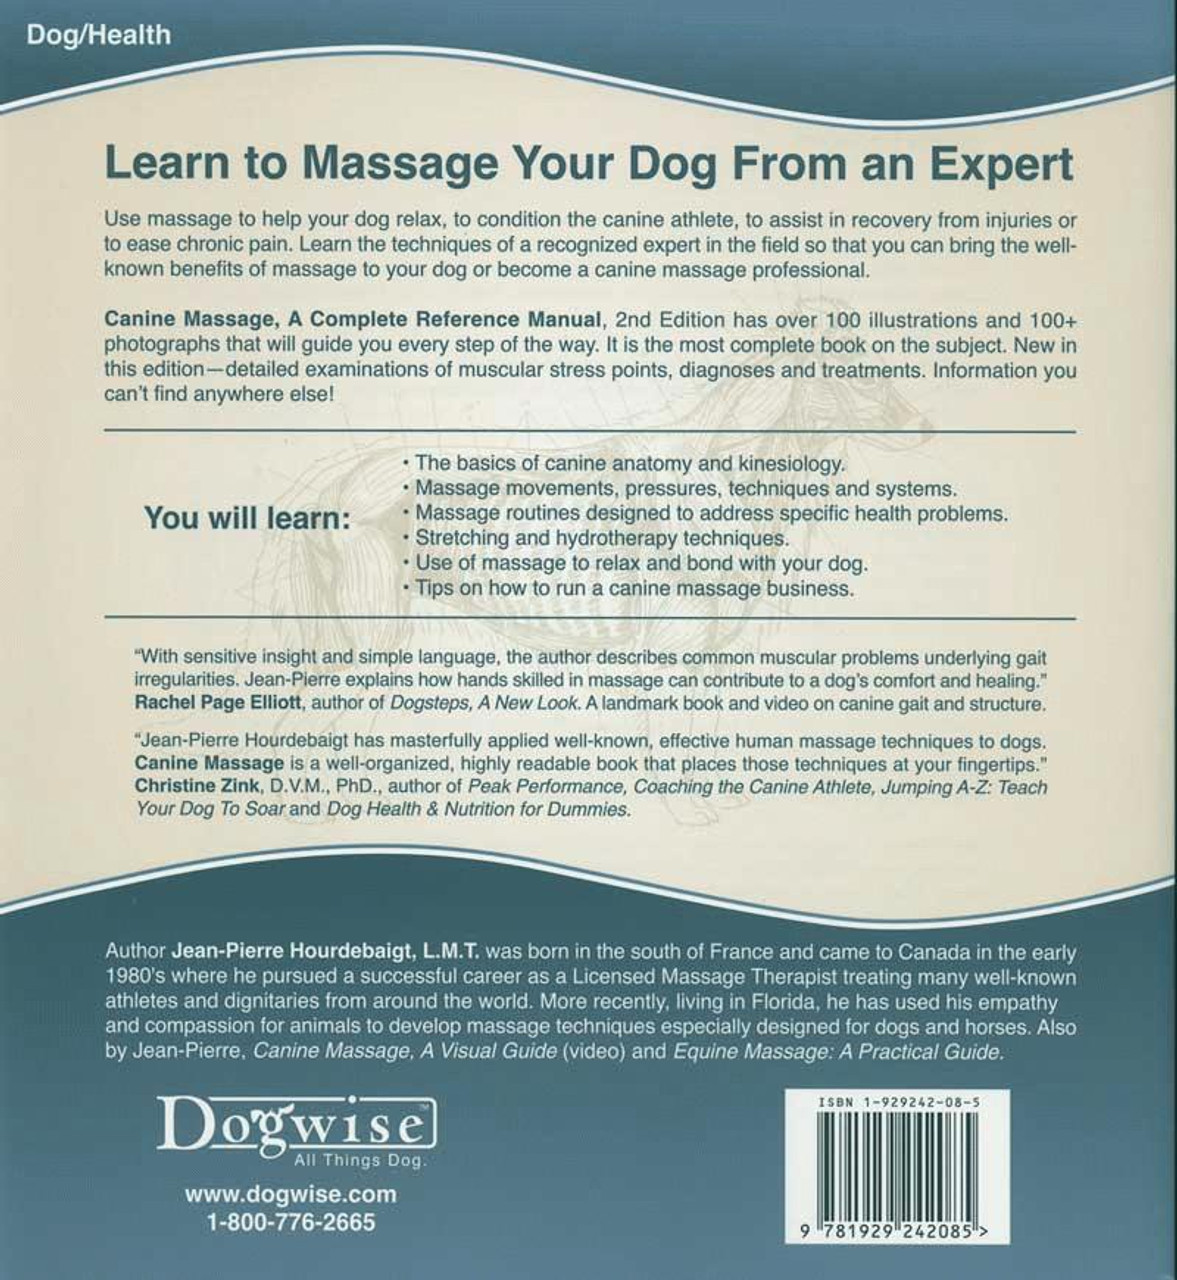 Canine Massage - A Complete Reference Manual - Dogwise